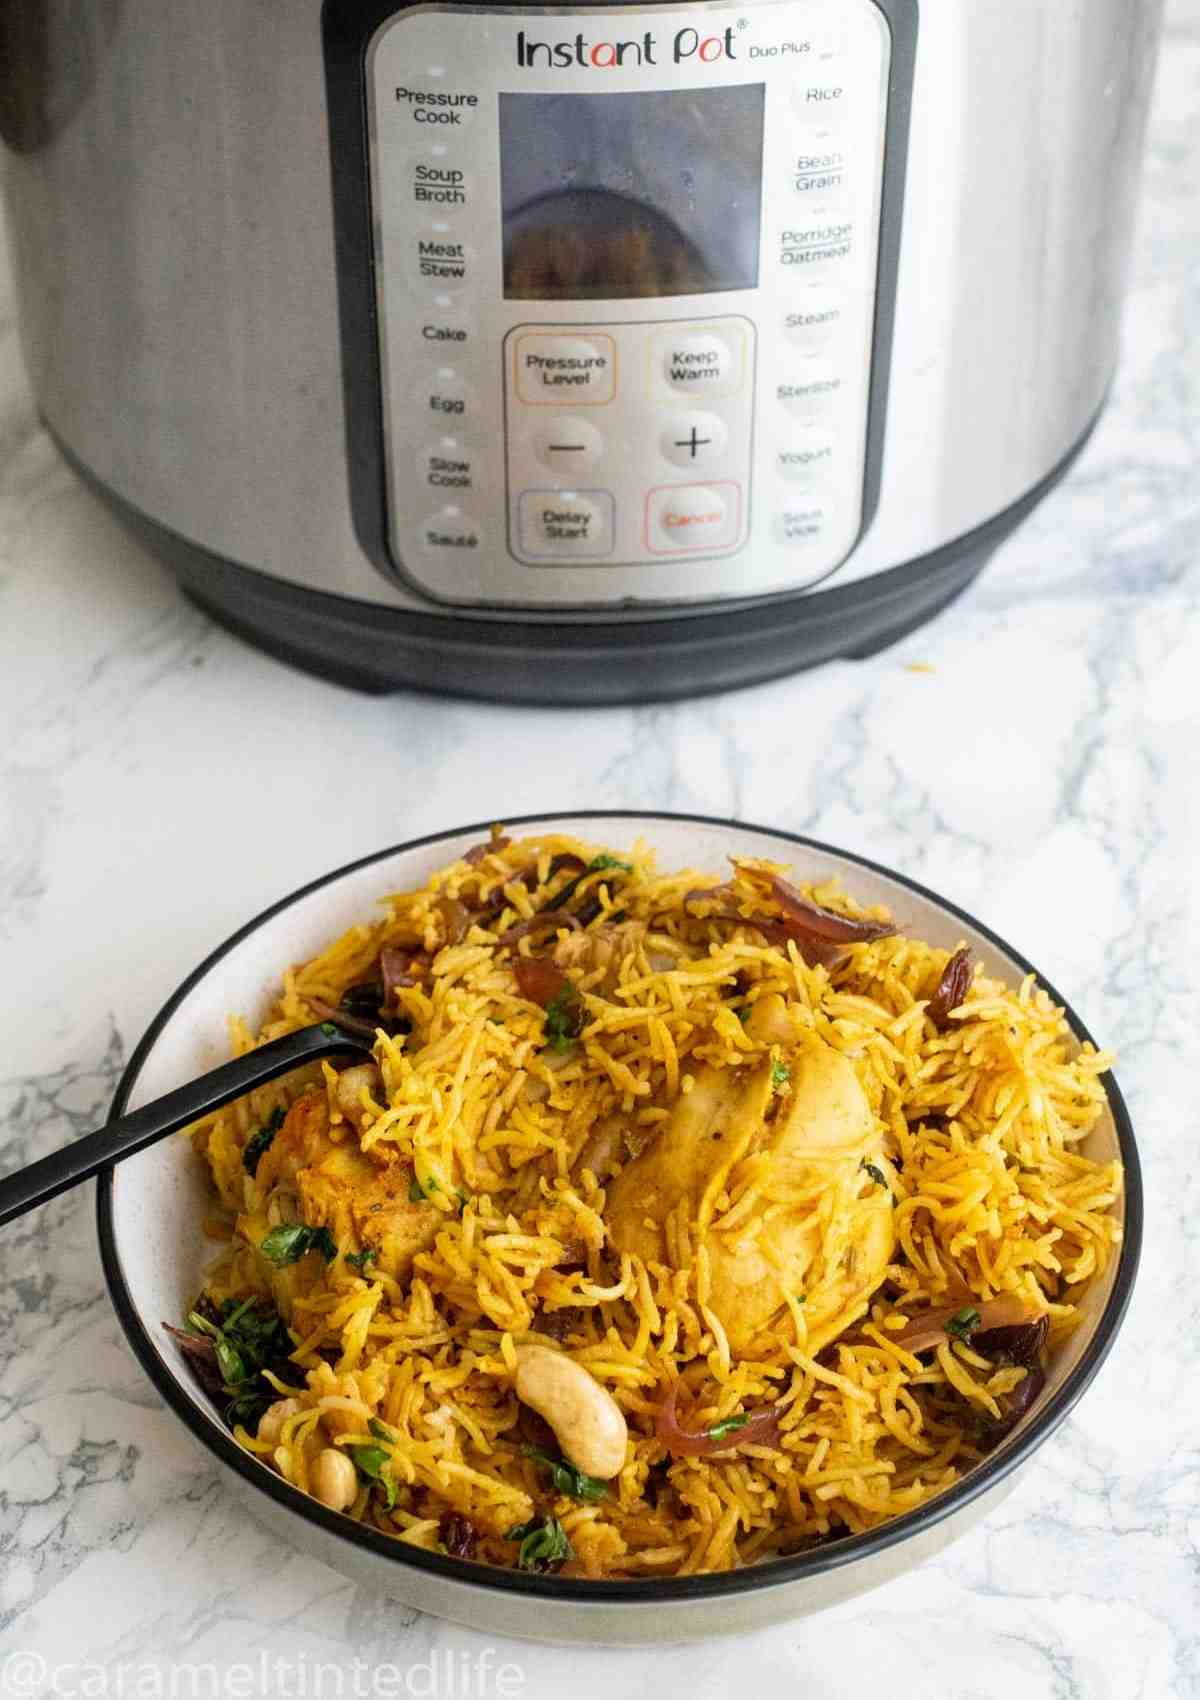 Chicken biryani served in a bowl in front of the Instant Pot